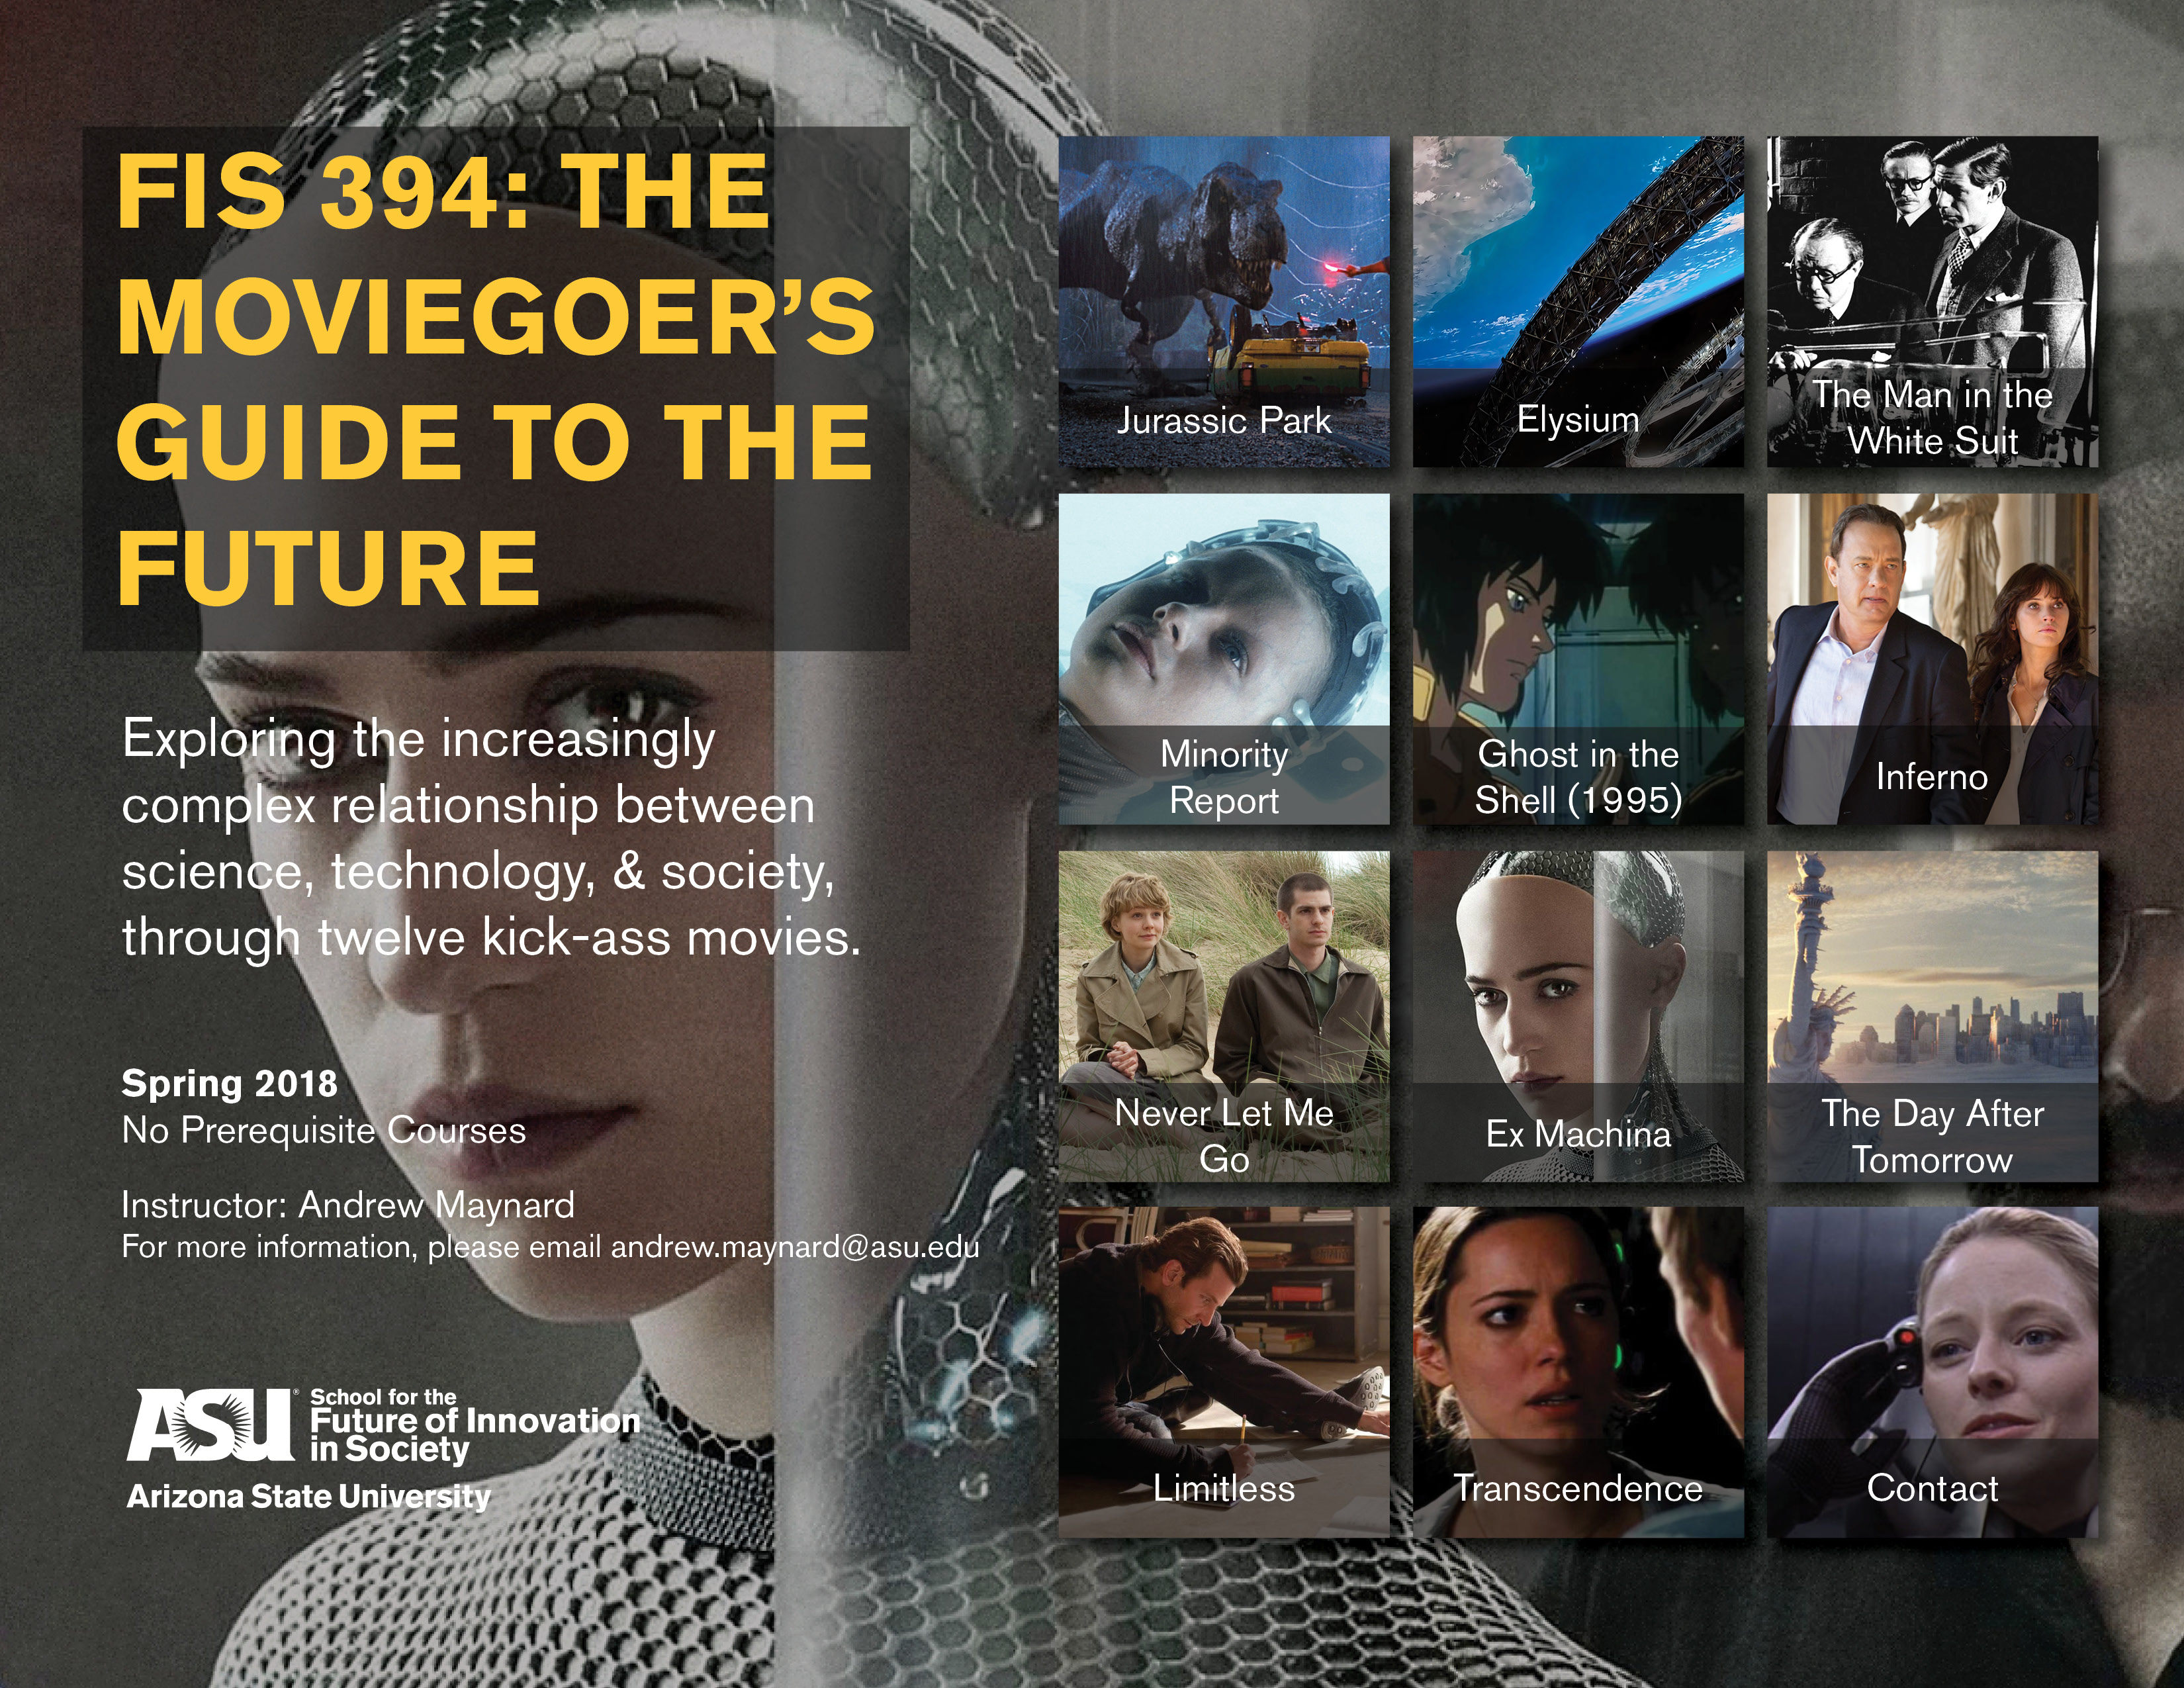 photographer cover letter%0A The Moviegoer u    s Guide To The Future